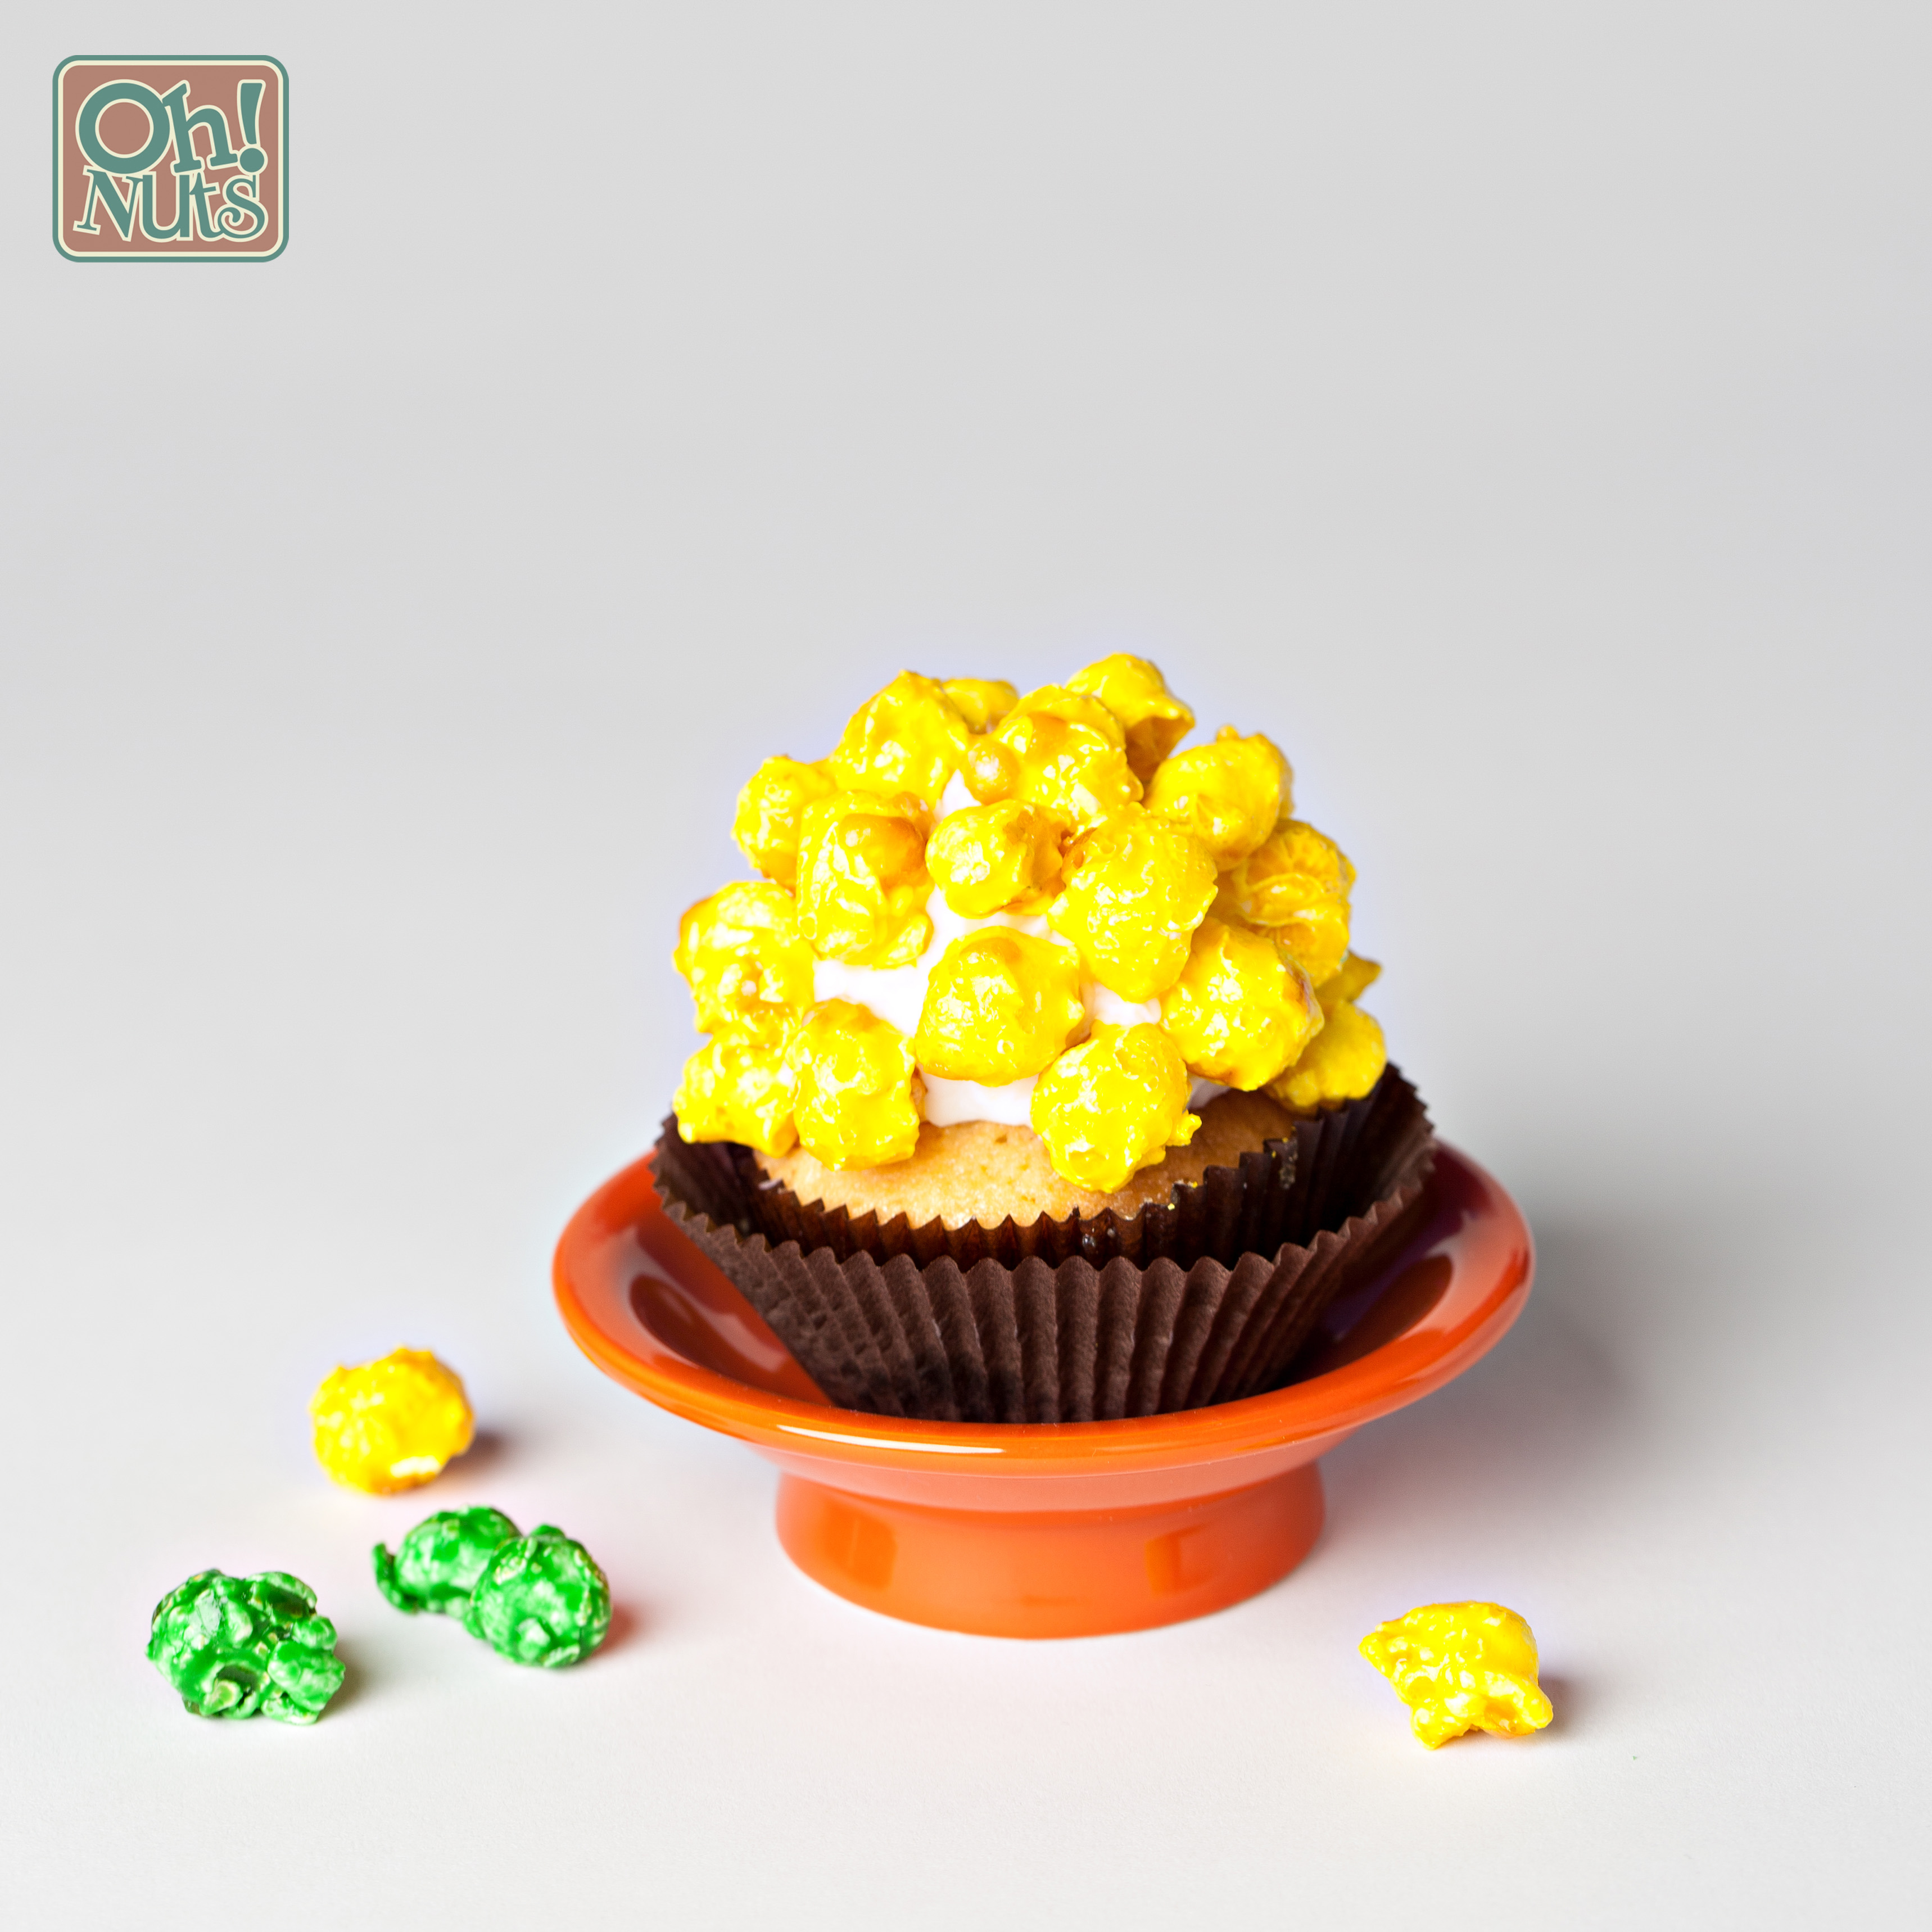 Popcorn Cupcakes Recipe From Scratch- Caramel | Oh Nuts Blog